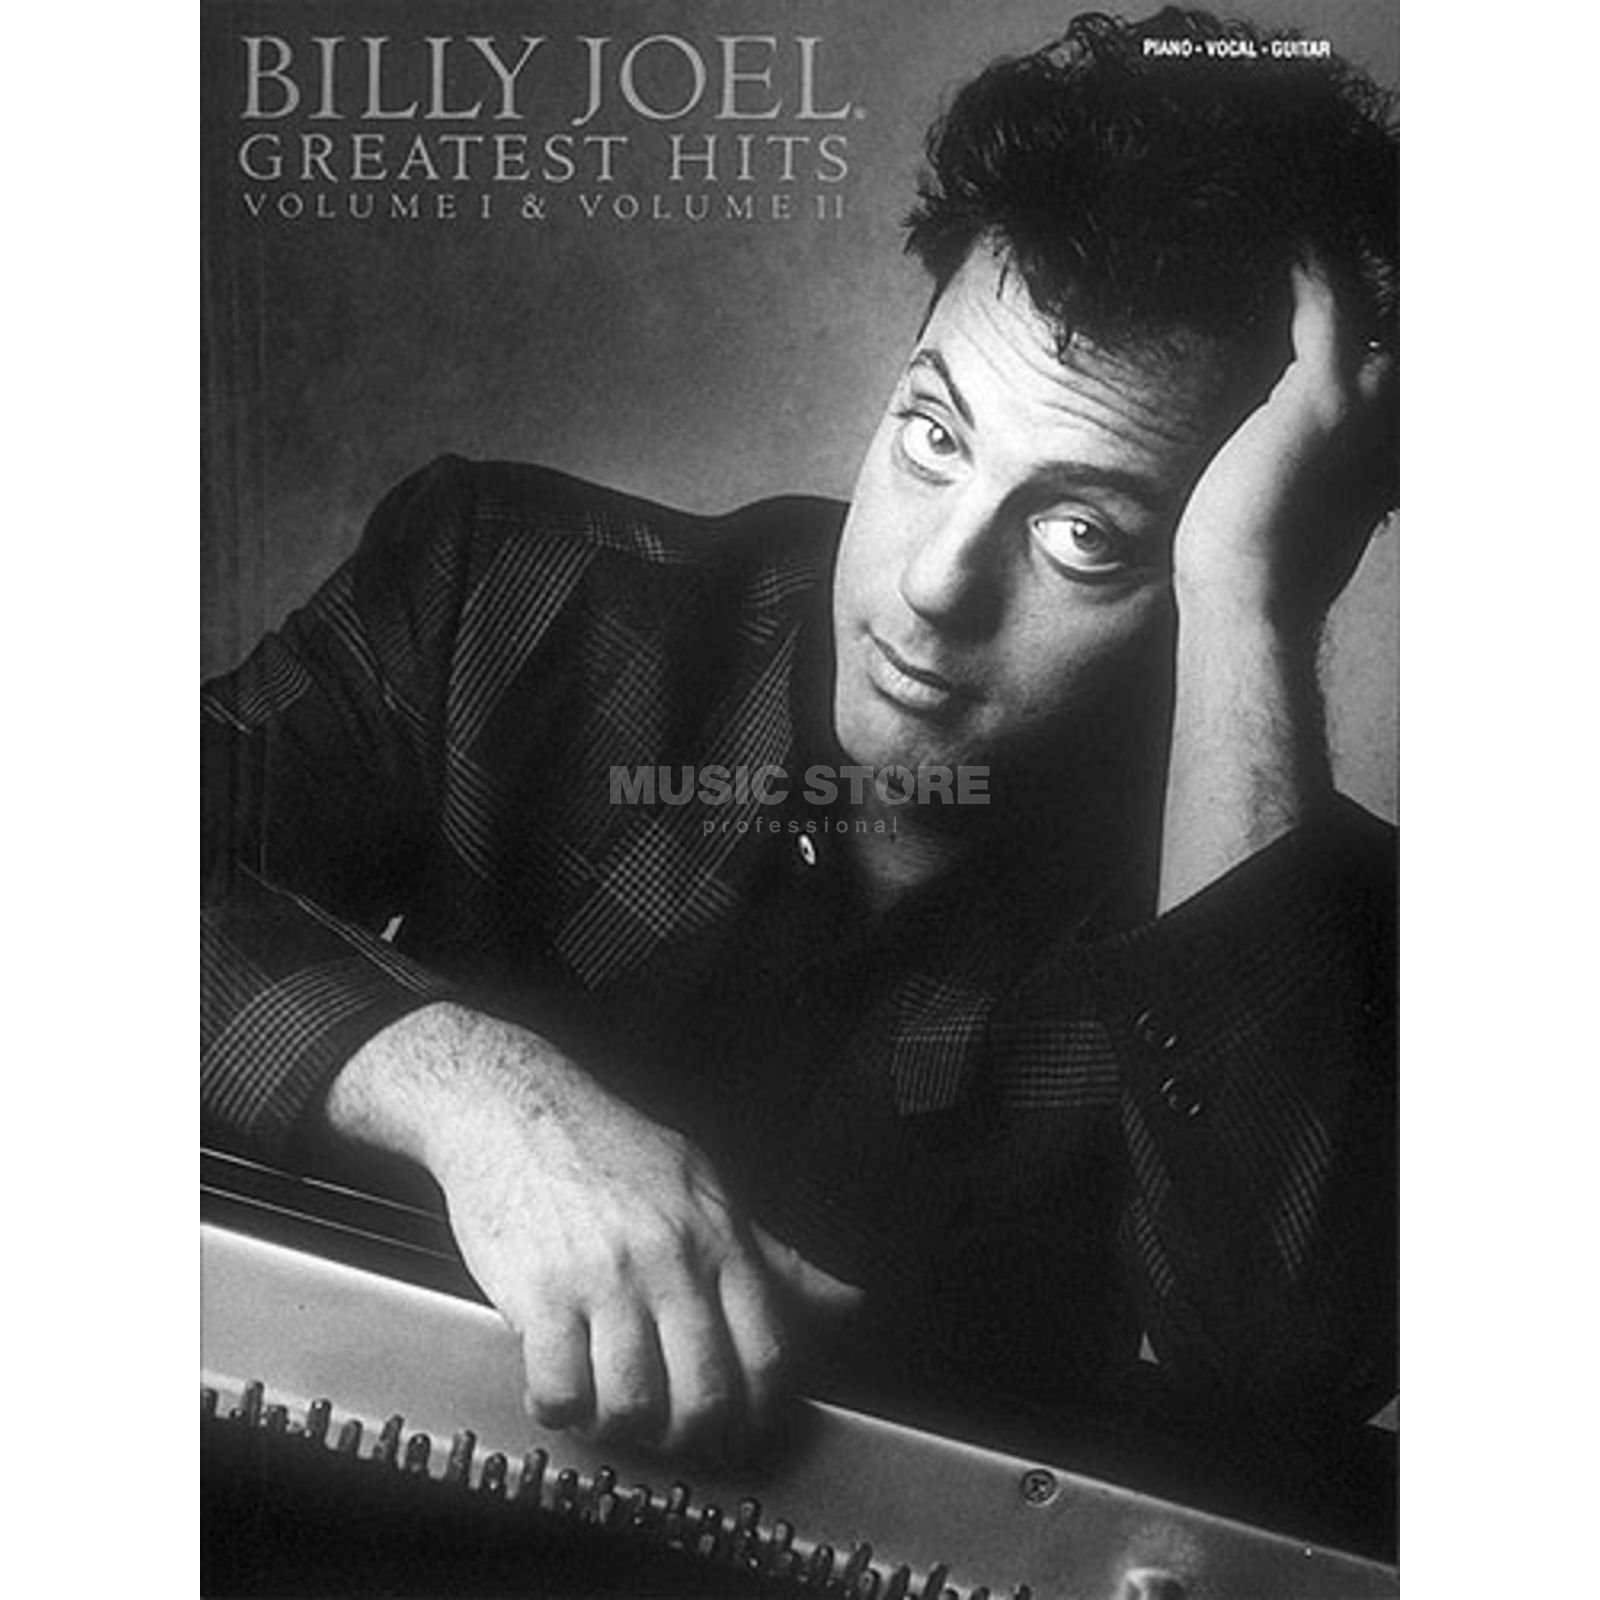 Hal Leonard Billy Joel: Greatest Hits 1+2 PVG Produktbillede